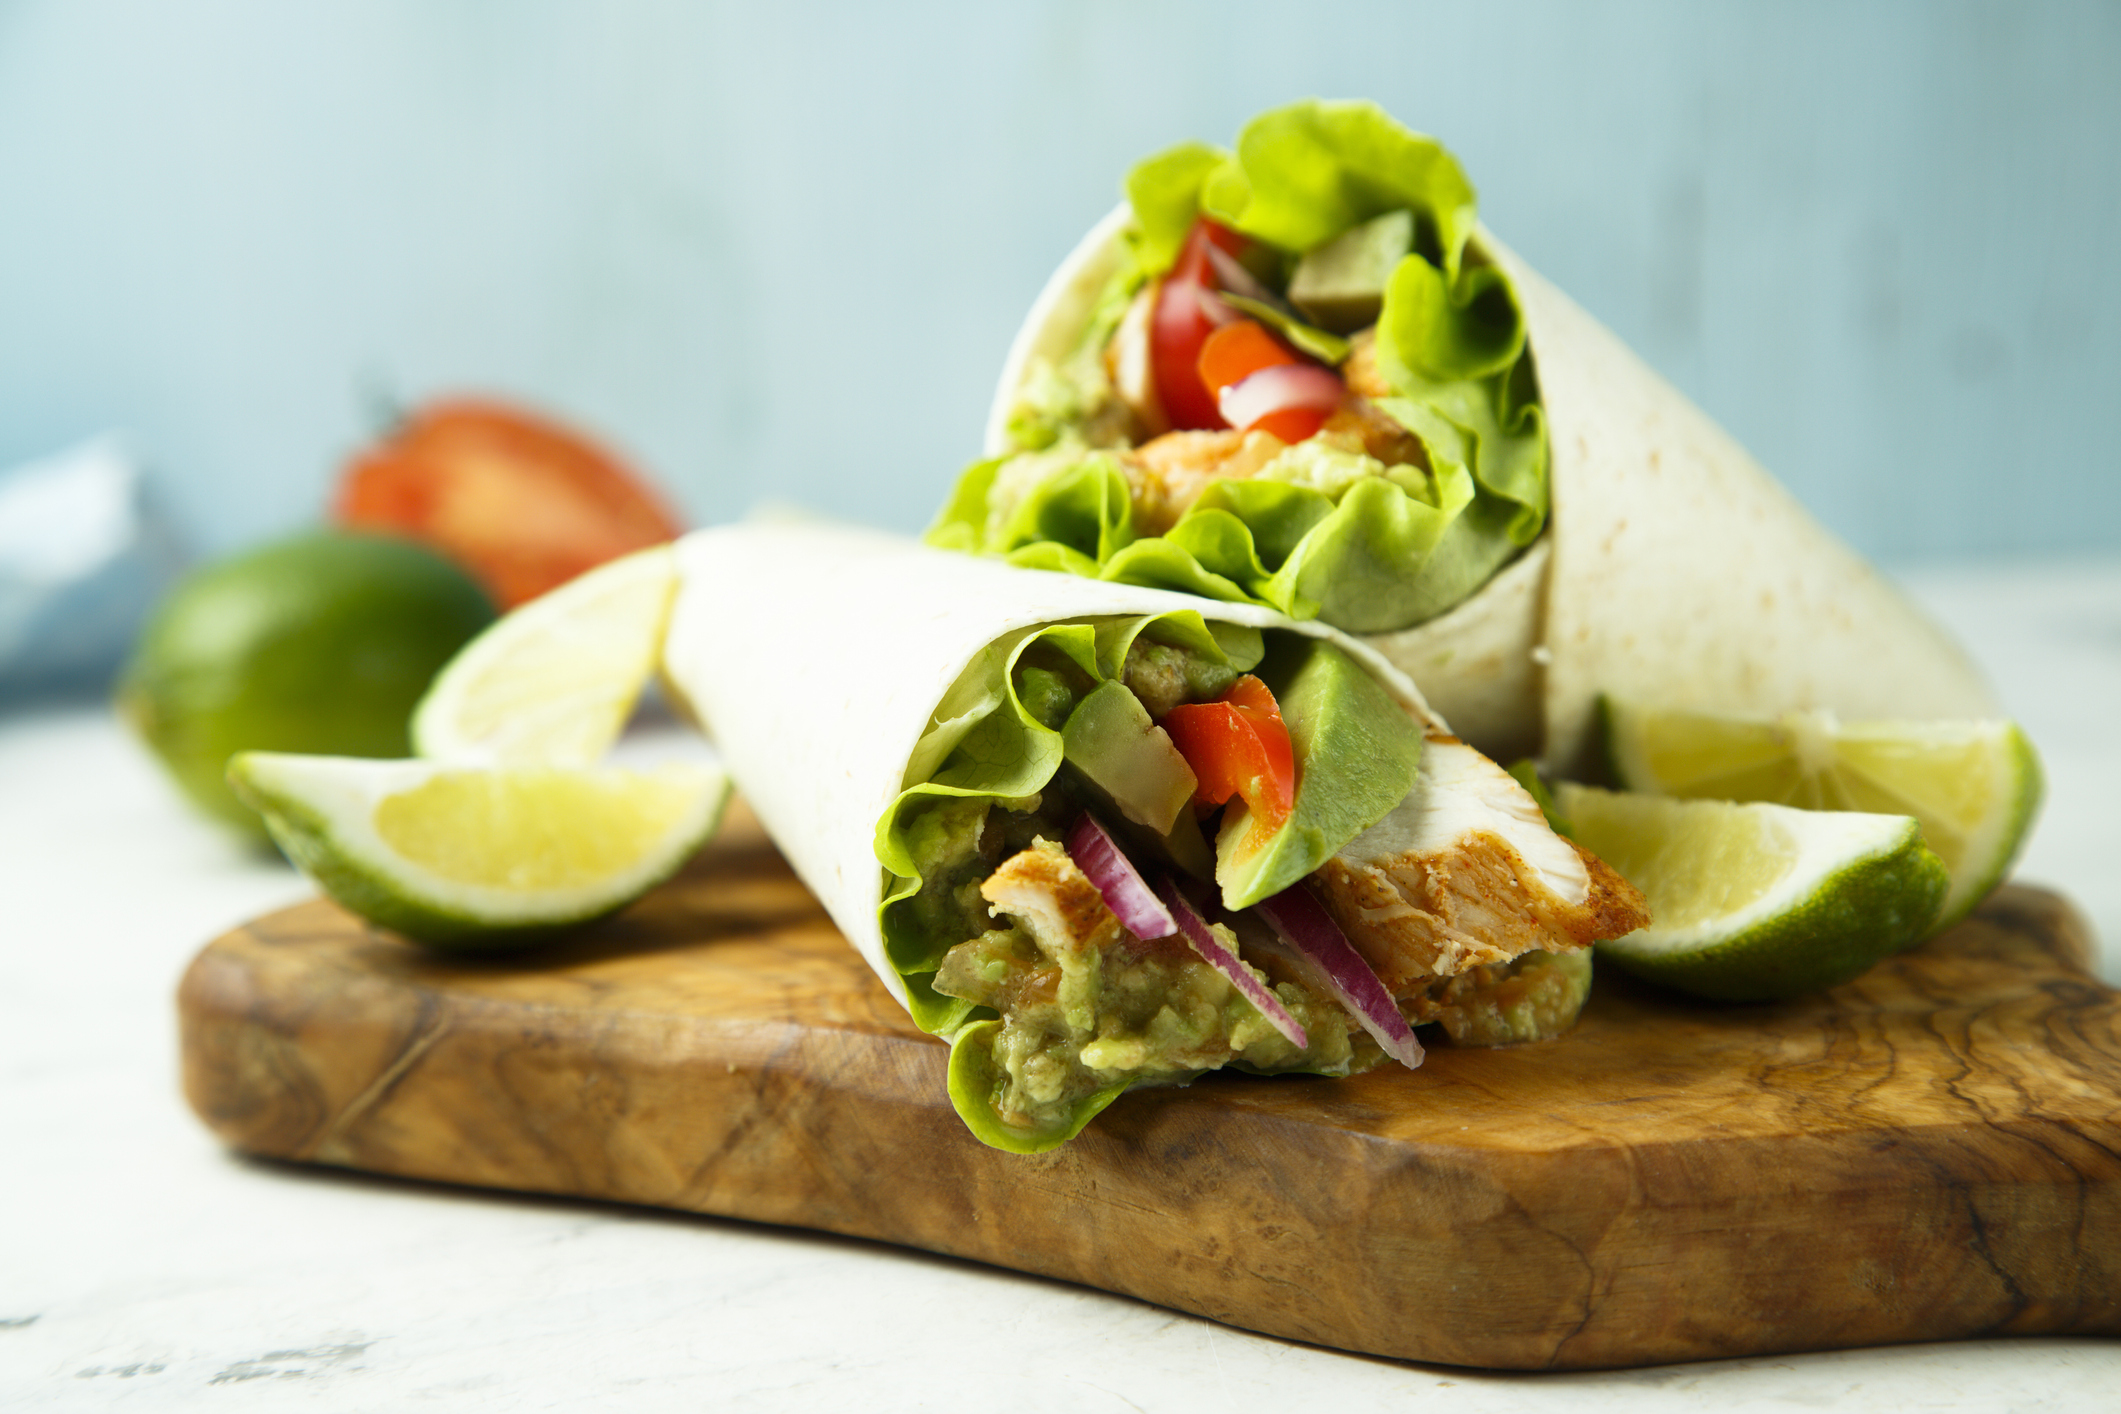 Wrap up veggies + protein for a quick on the go meal. (Image Source: iStock)